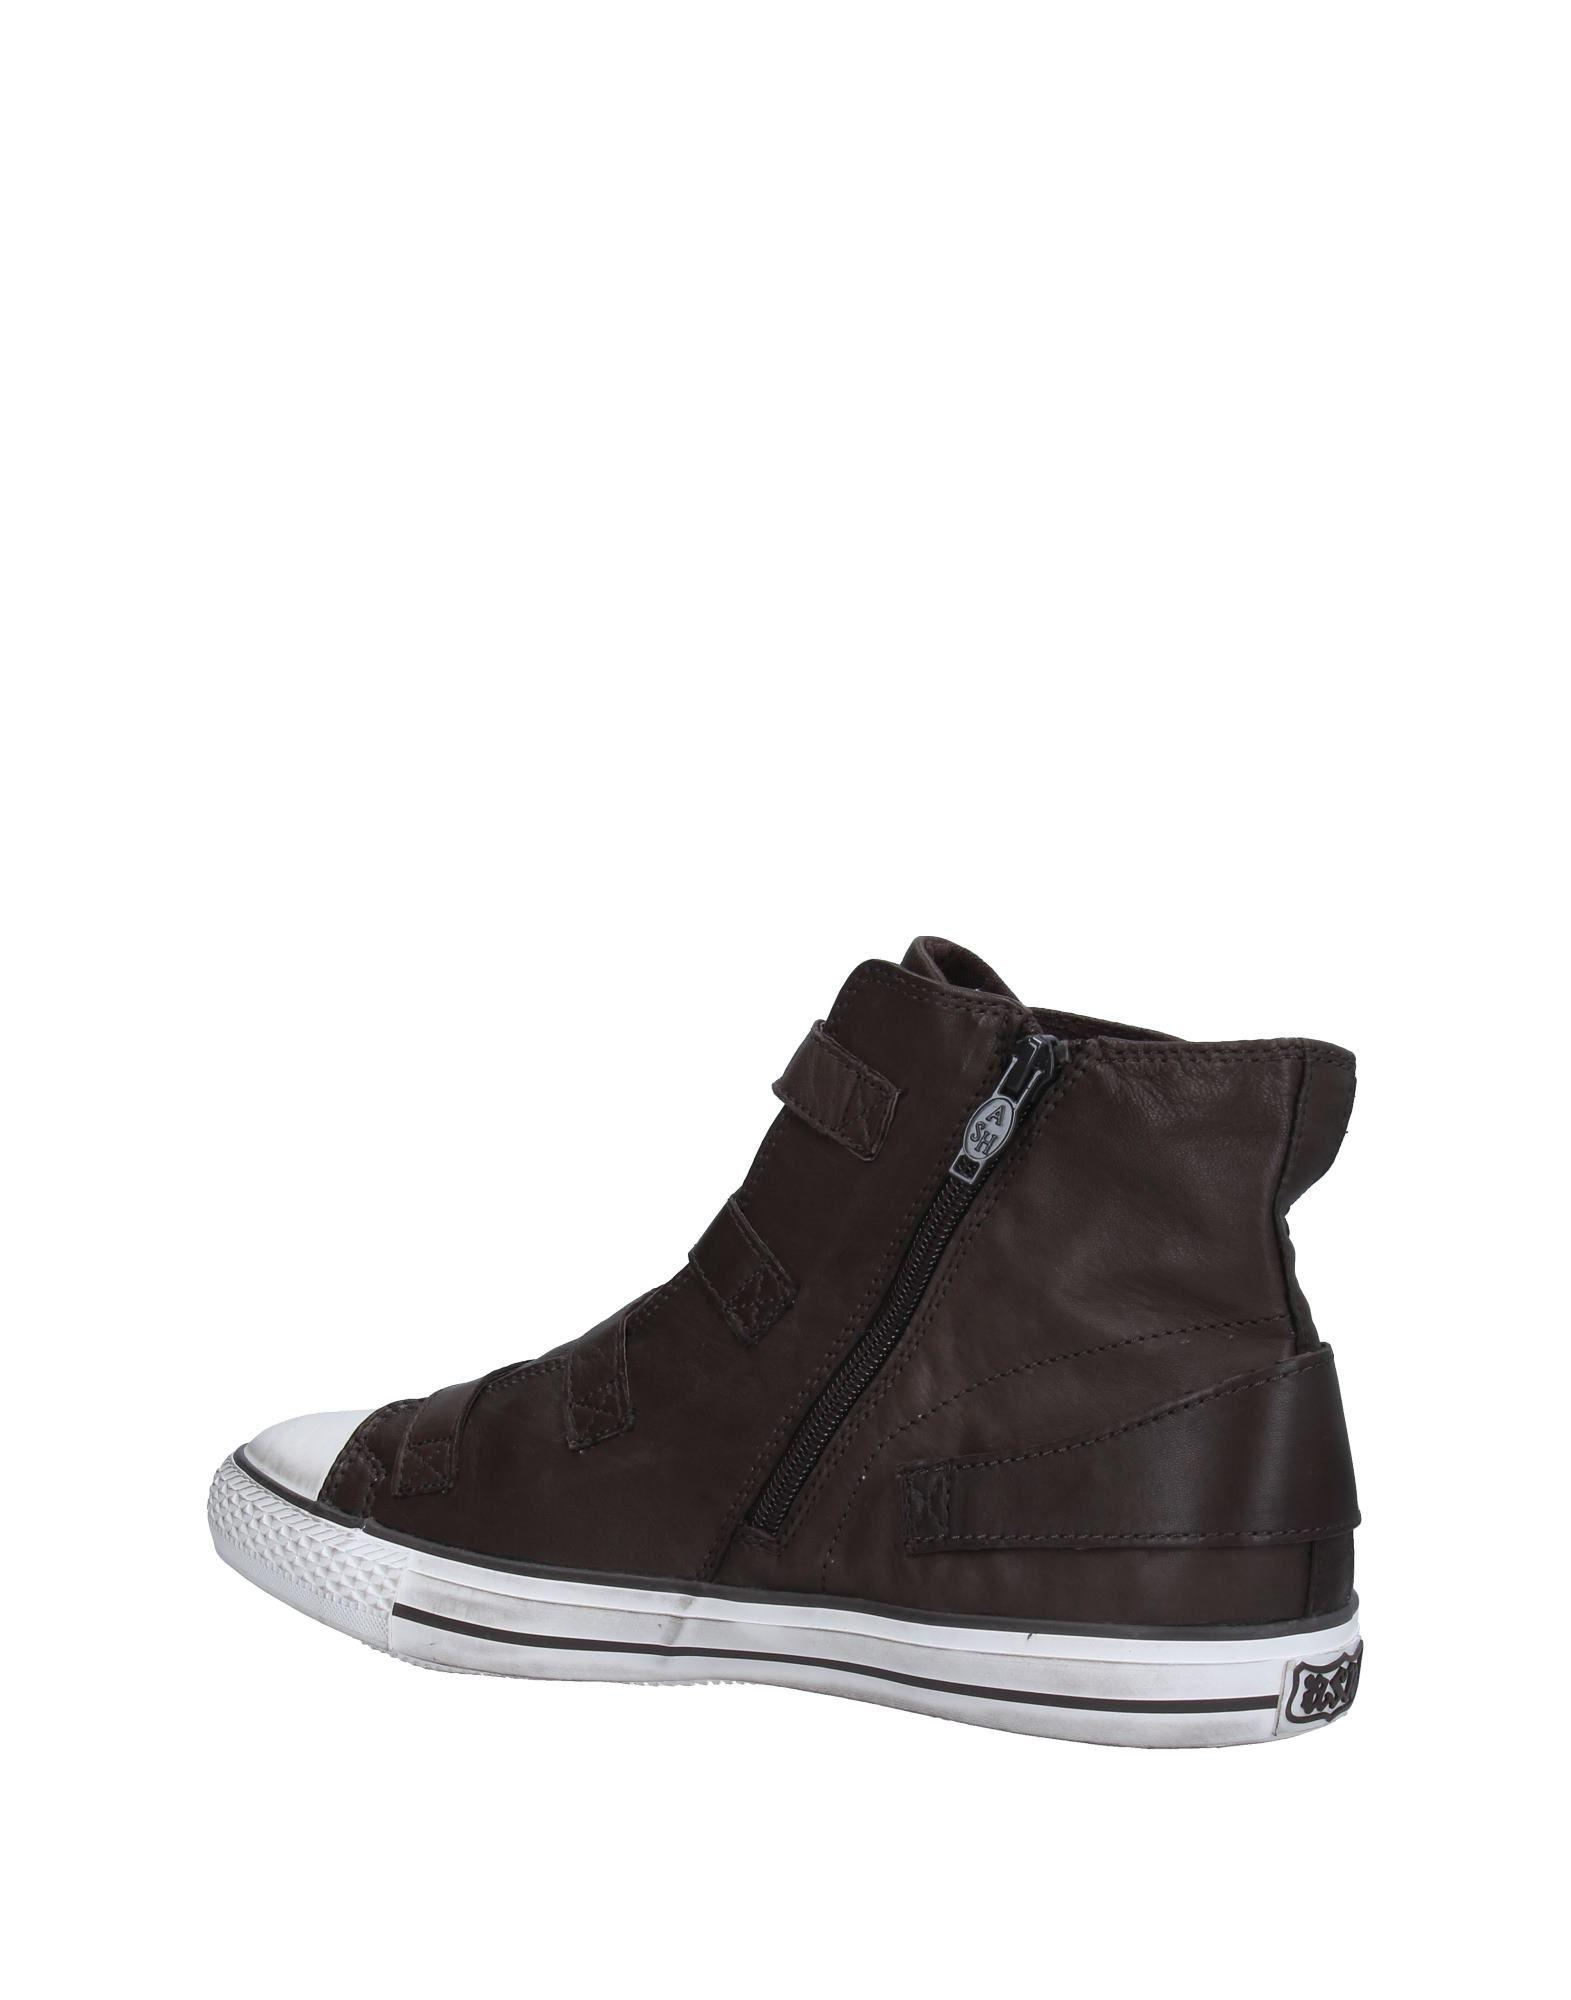 ash high tops sneakers in brown lyst. Black Bedroom Furniture Sets. Home Design Ideas